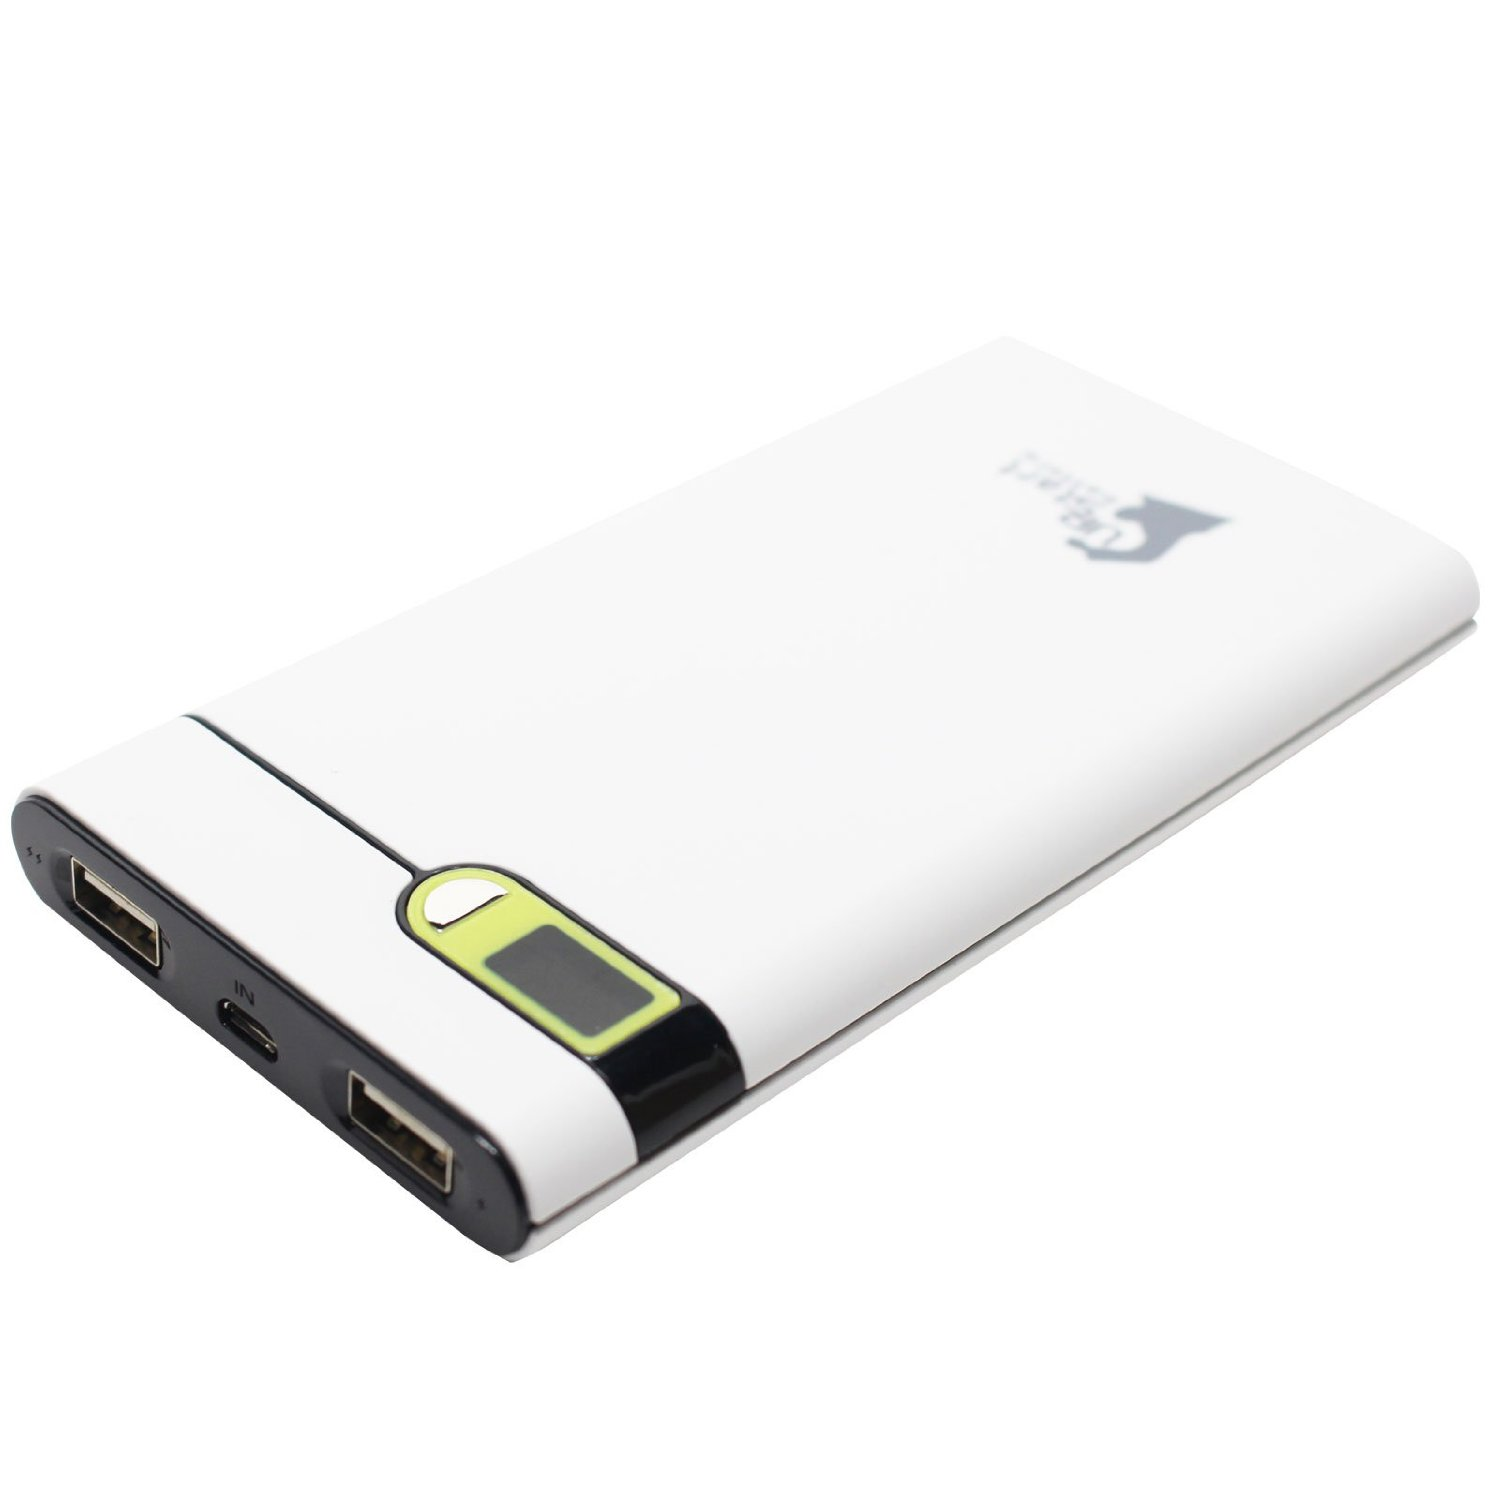 Samsung I8520 Halo Portable Charger - External Battery Pack (Dual USB Power Bank, 10000mAh, 1A & 2.1A Output)